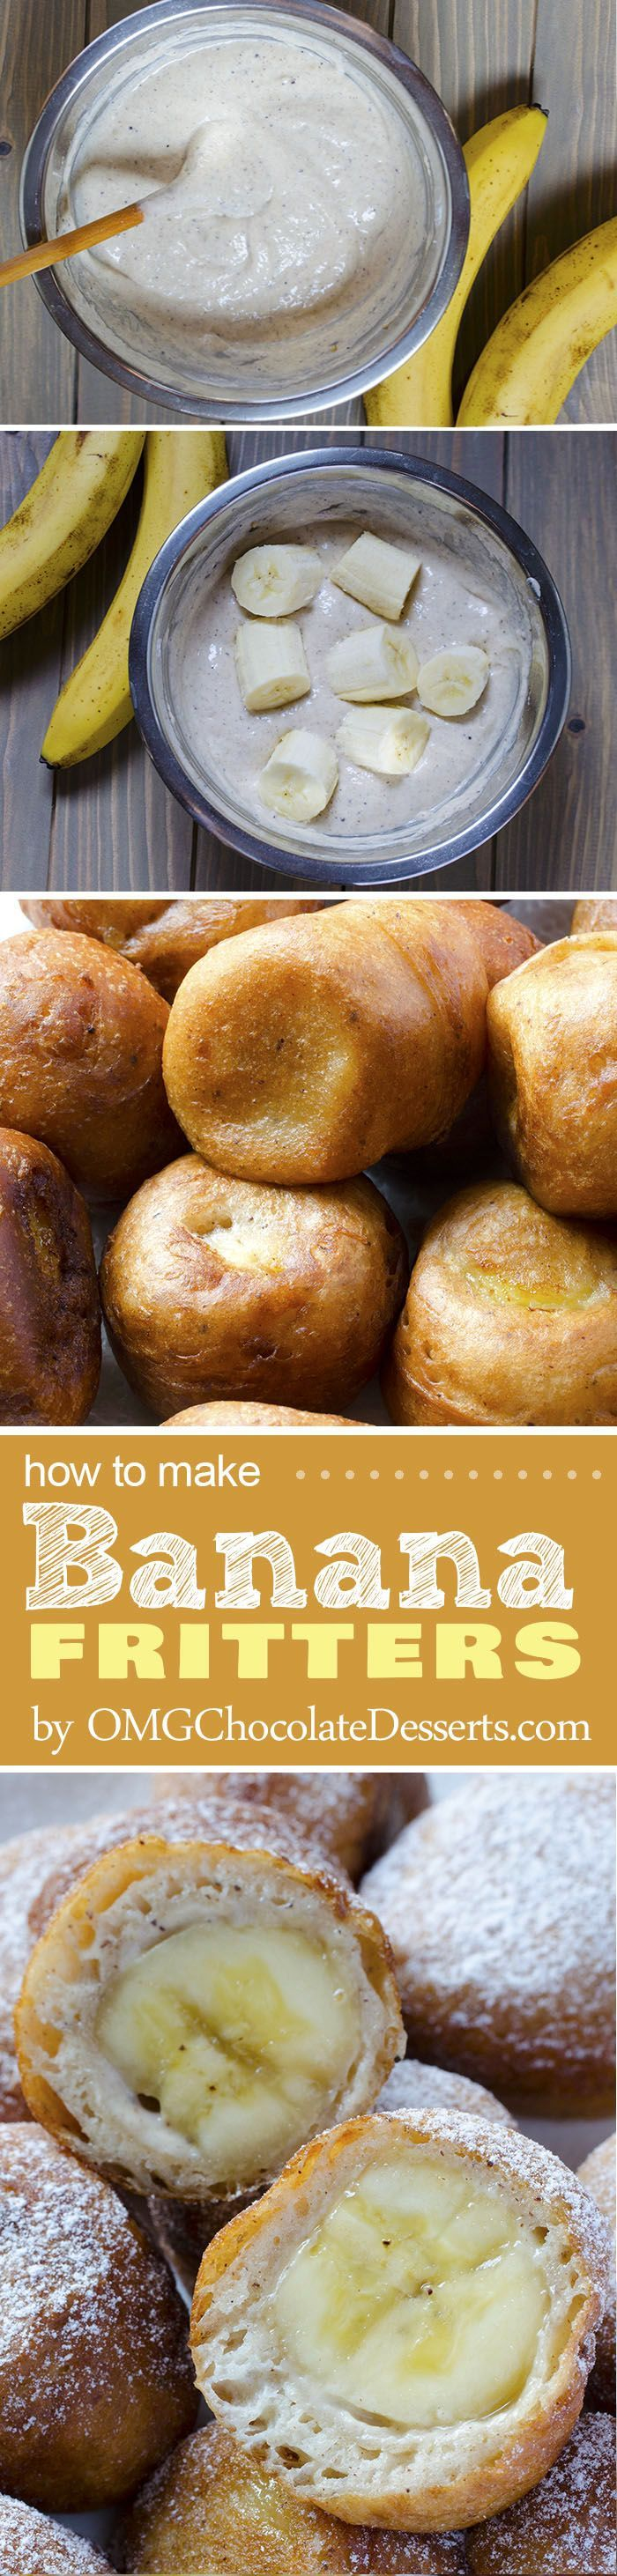 Couple of bananas extra? The time is for delicious Banana Fritters. Perfect for any occassion! | https://OMGChocolateDesserts.com | #banana #fritters